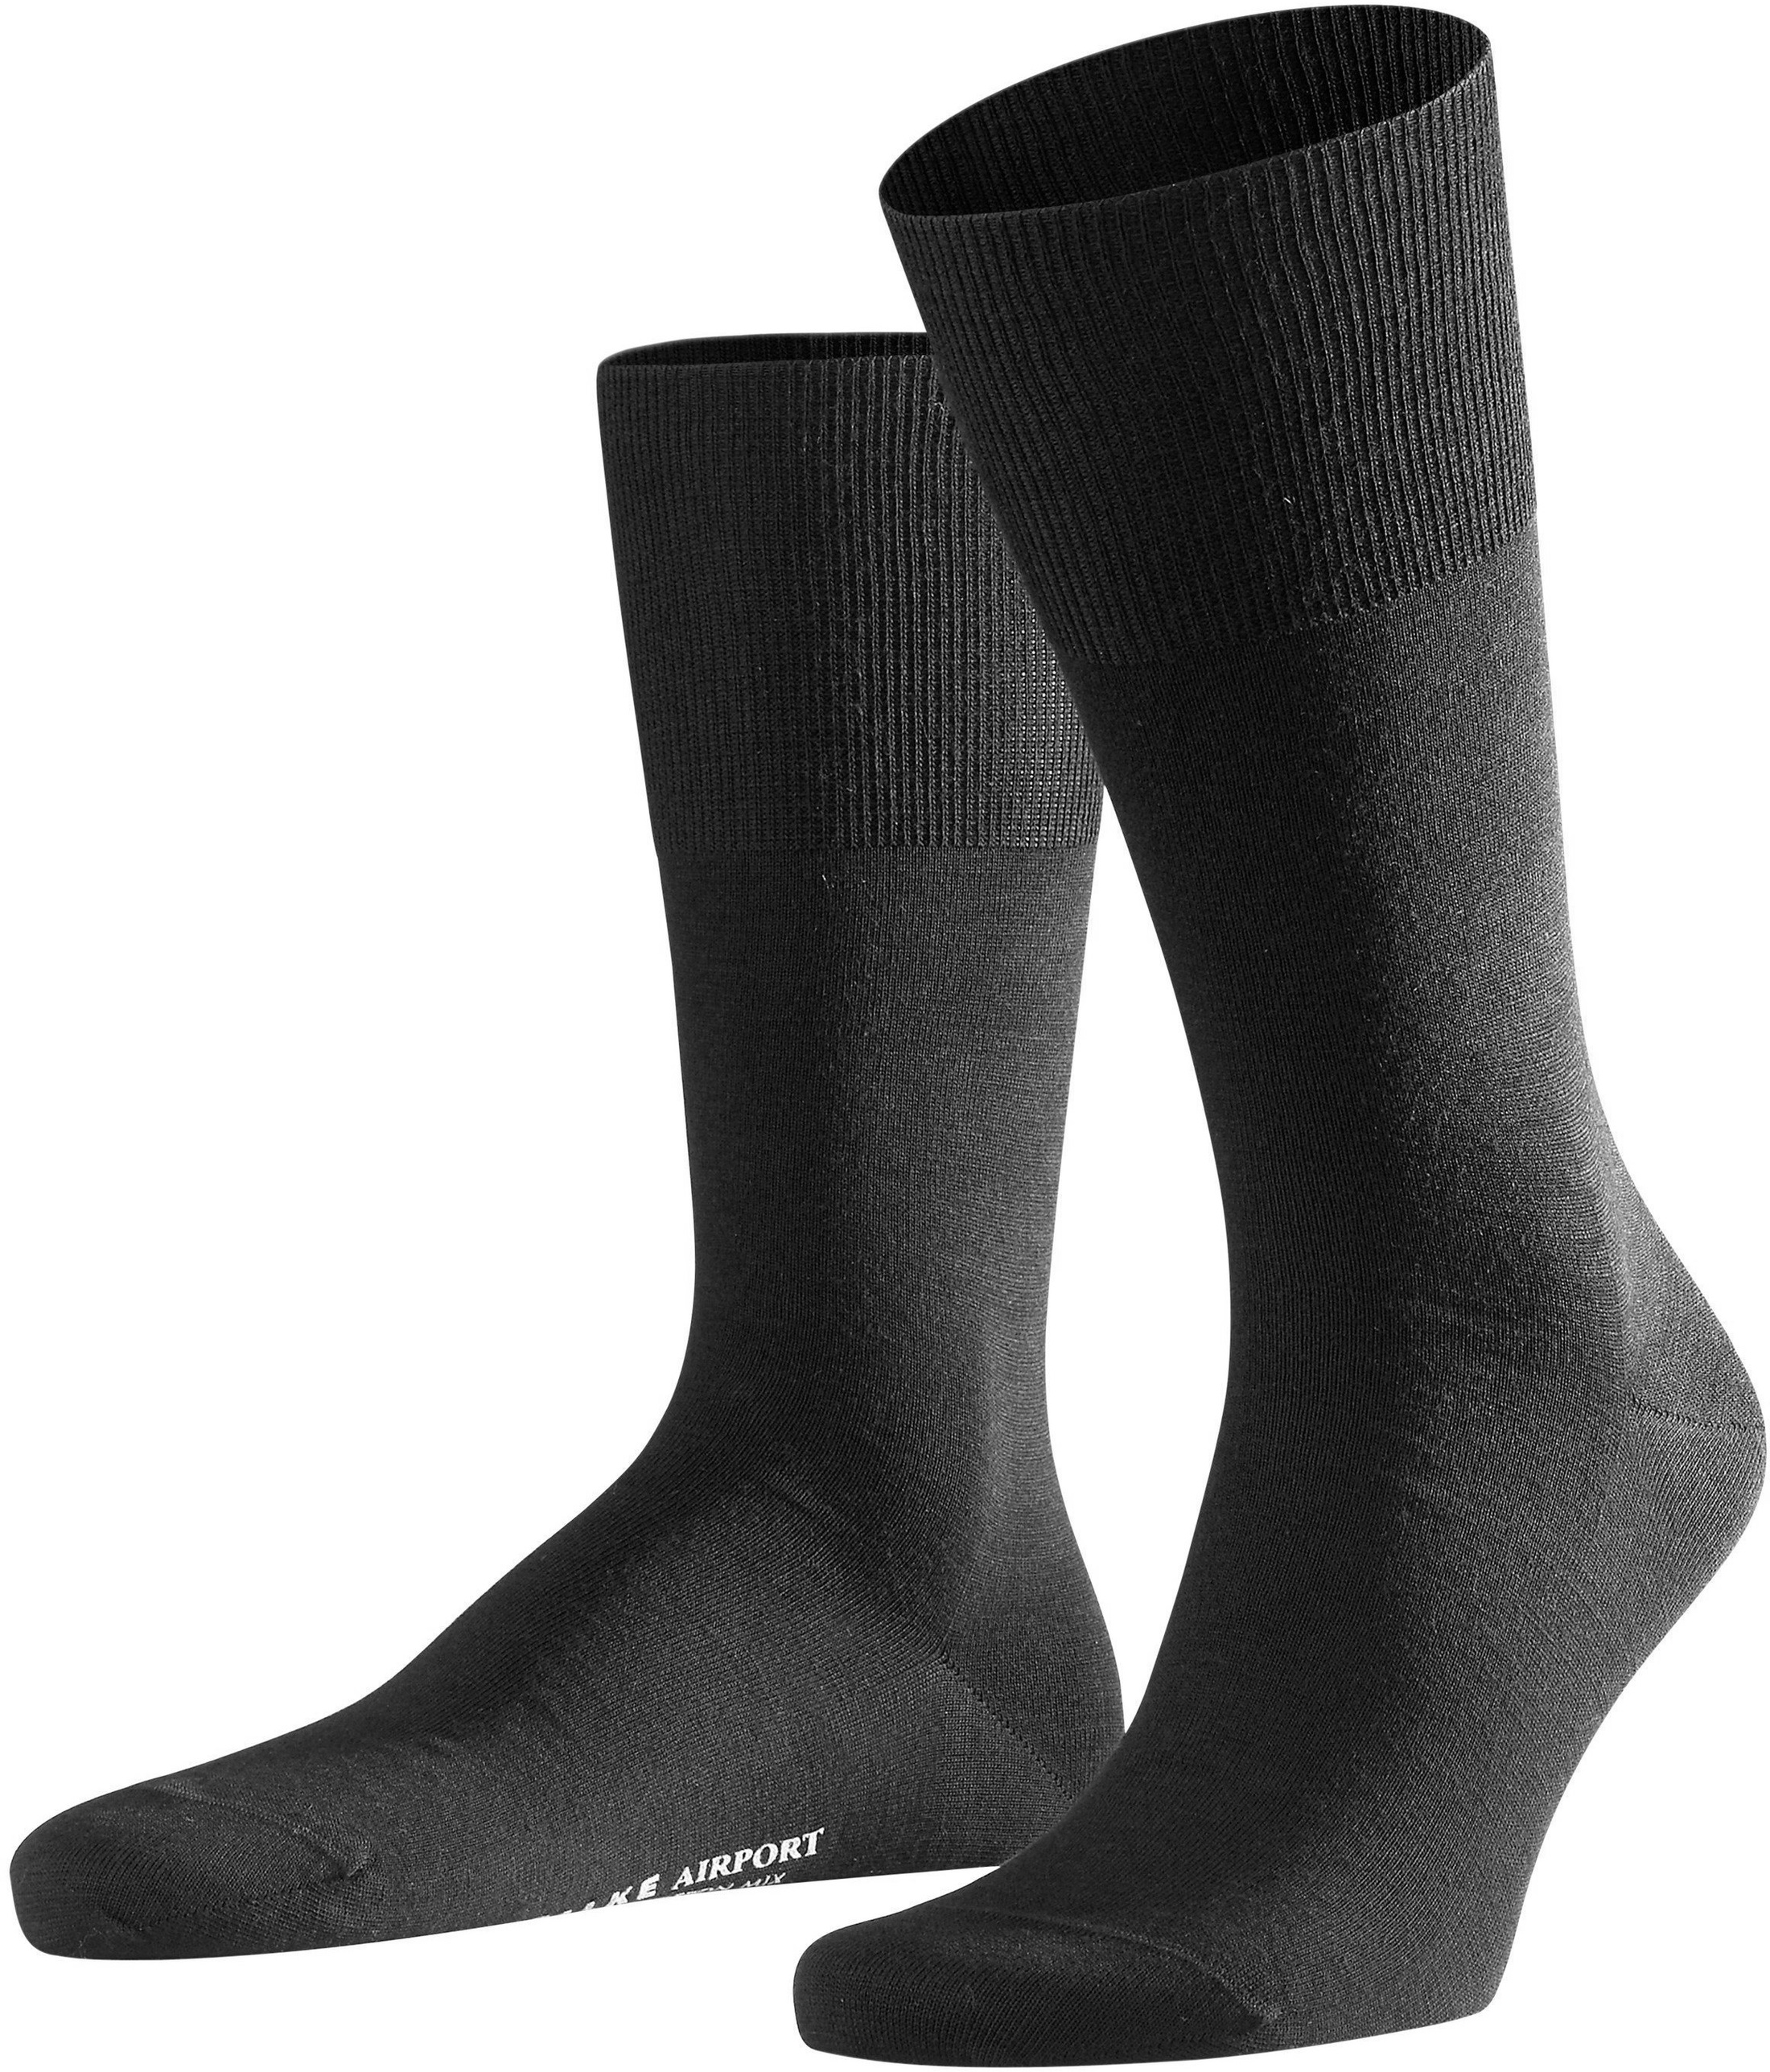 Falke Airport Socks Black 3000 foto 0